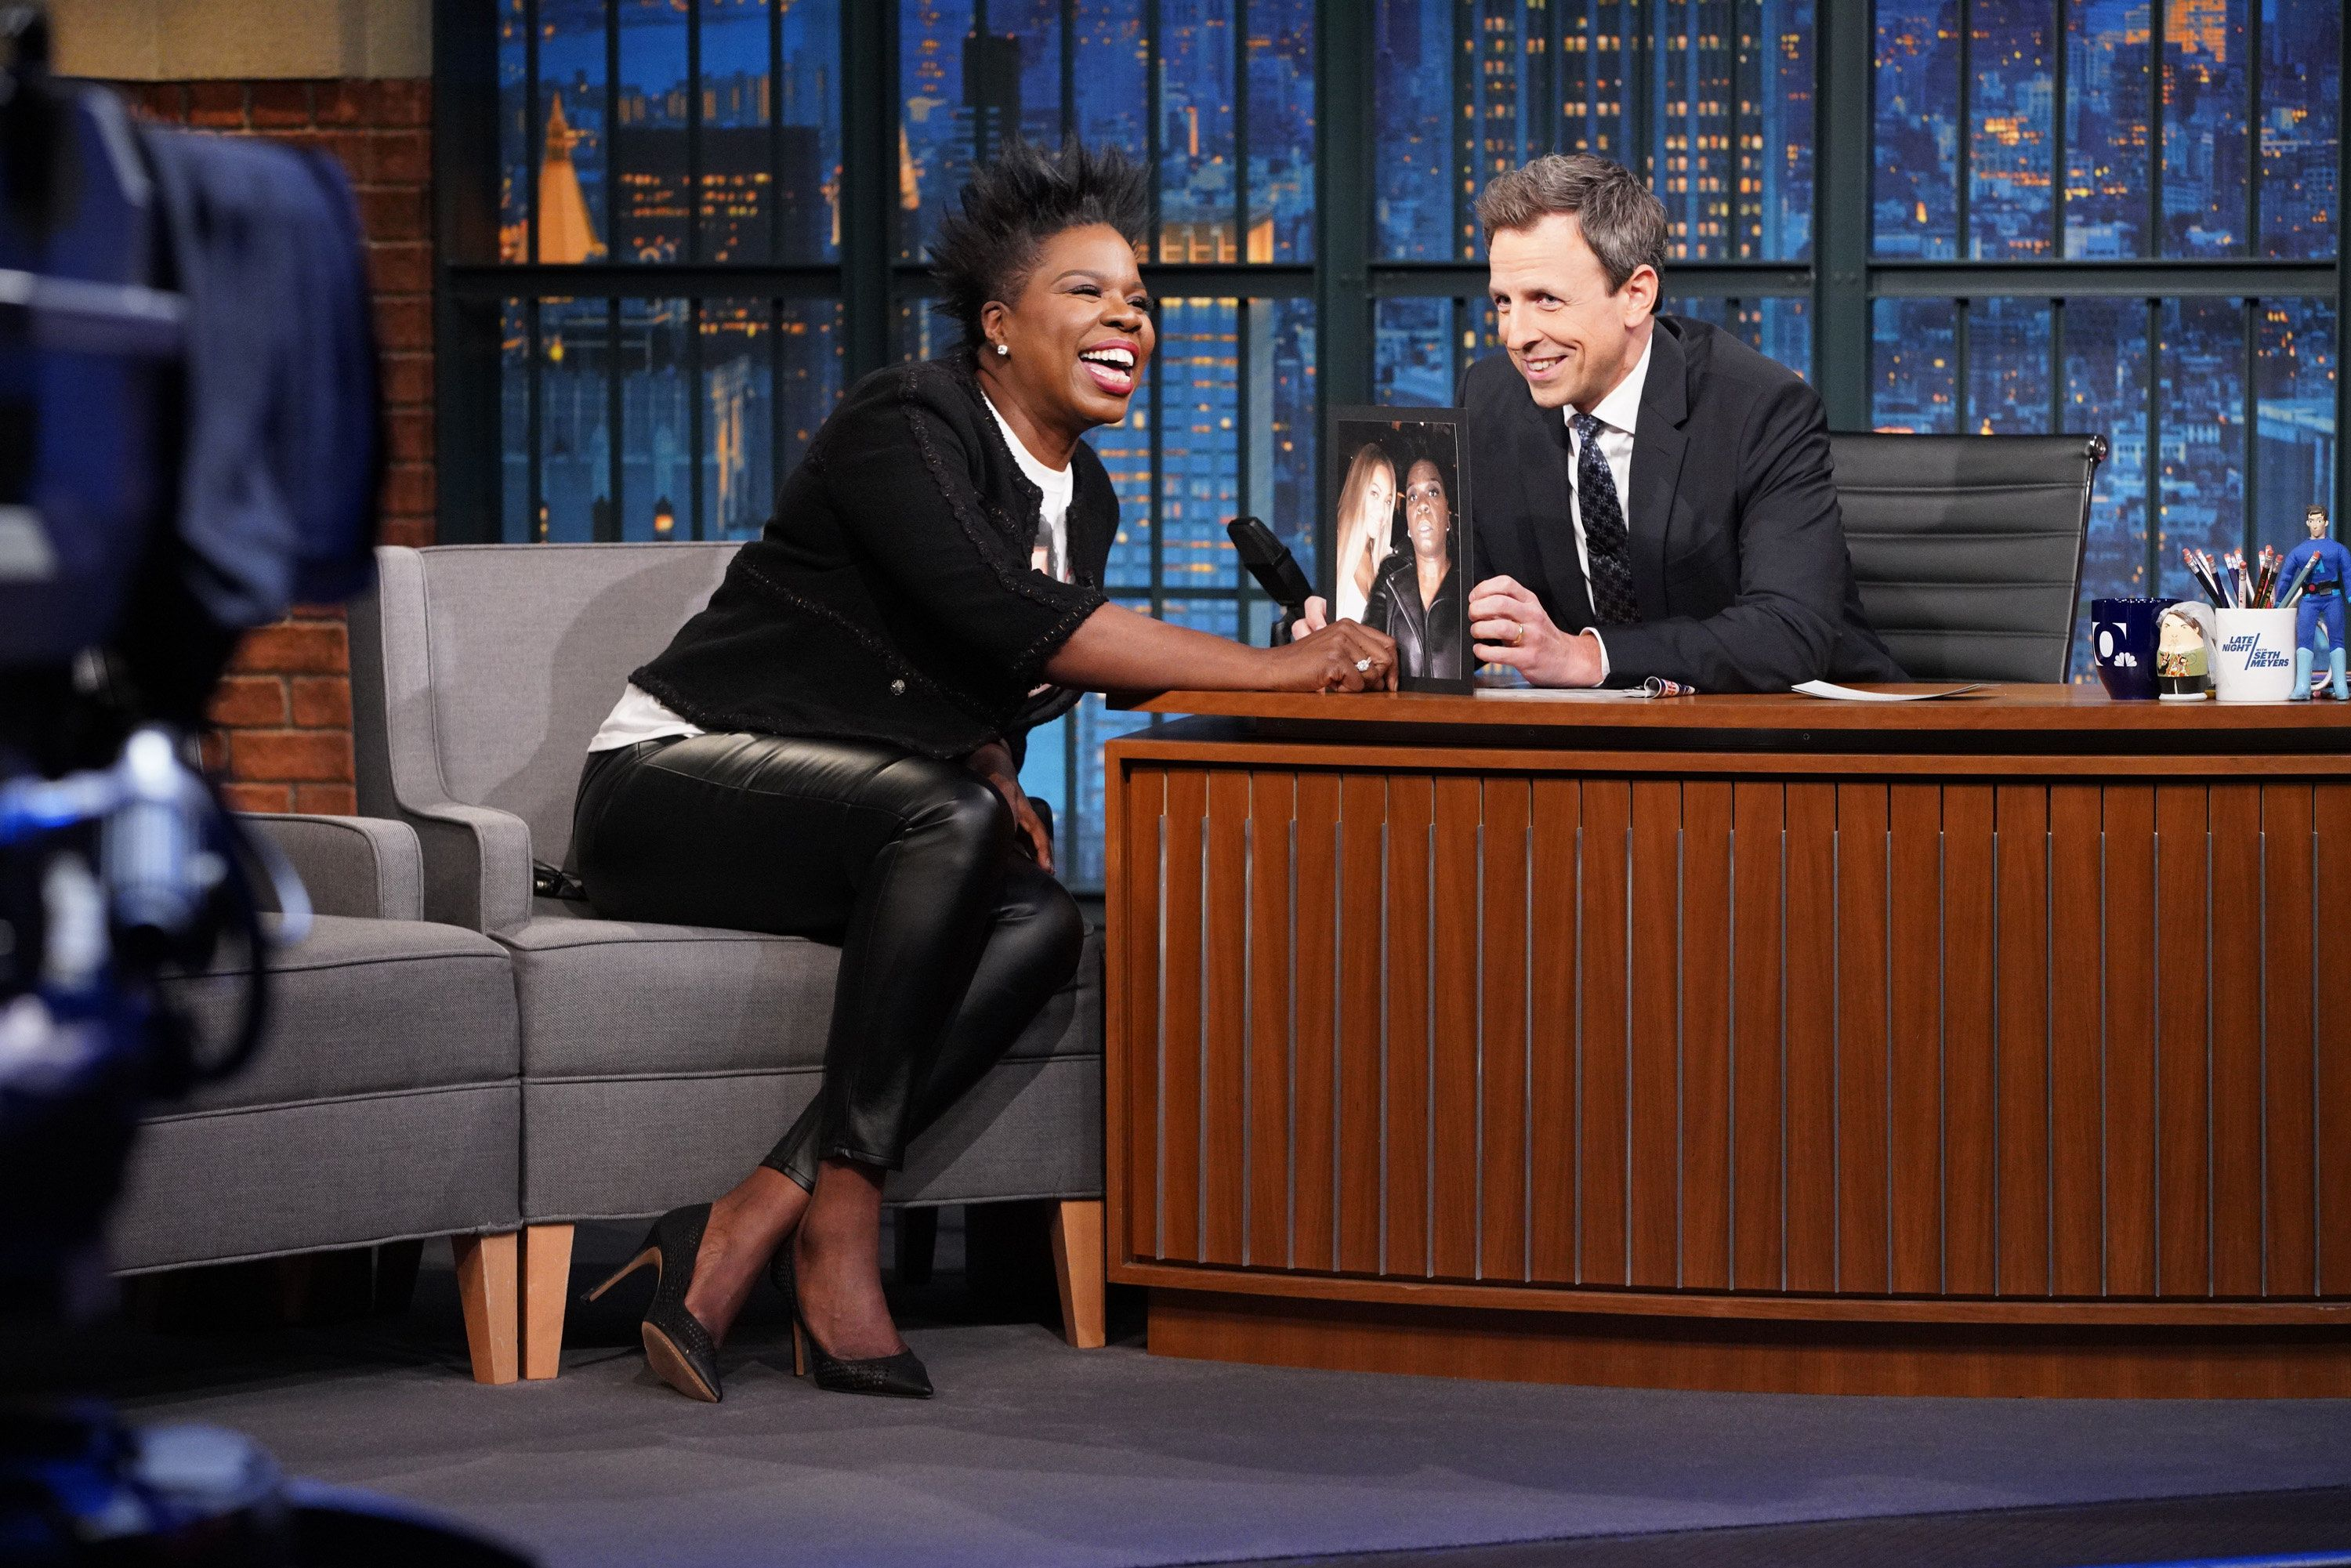 LATE NIGHT WITH SETH MEYERS -- Episode 635 -- Pictured: (l-r) Comedian Leslie Jones during an interview with host Seth Meyers on January 16, 2018 -- (Photo by: Lloyd Bishop/NBC/NBCU Photo Bank via Getty Images)